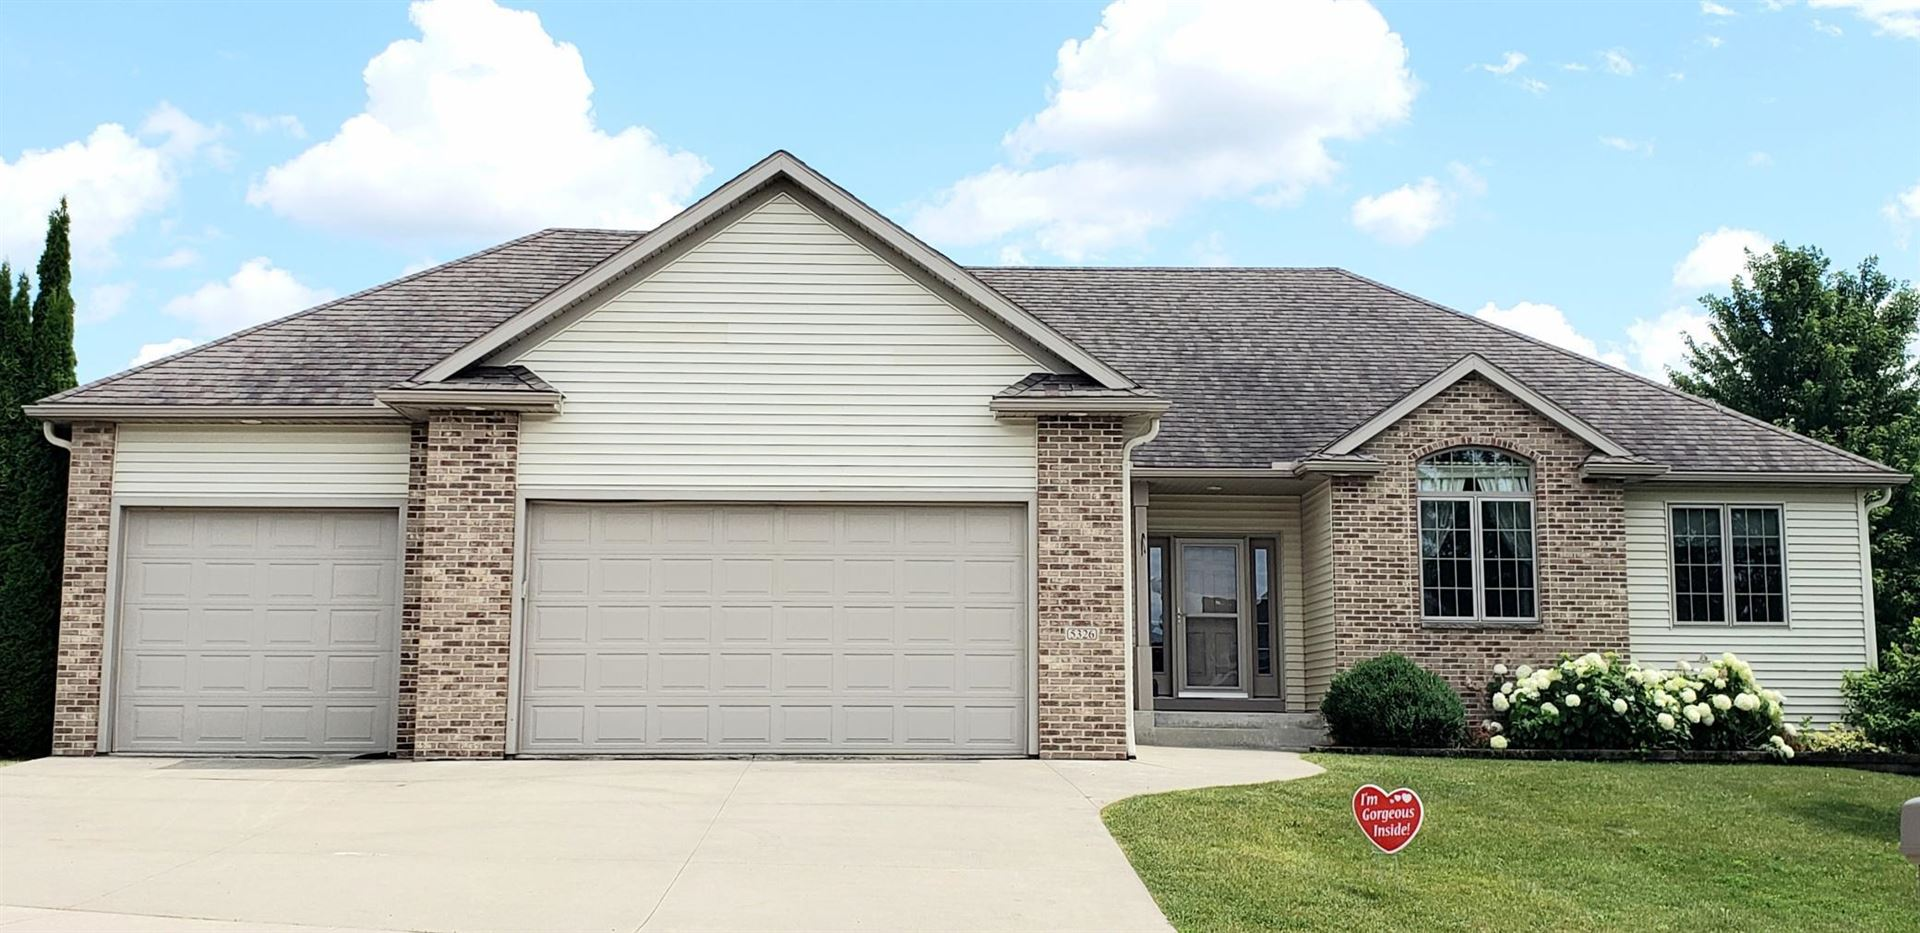 5326 Ridgeview Drive NW, Rochester, MN 55901 - MLS#: 5506368